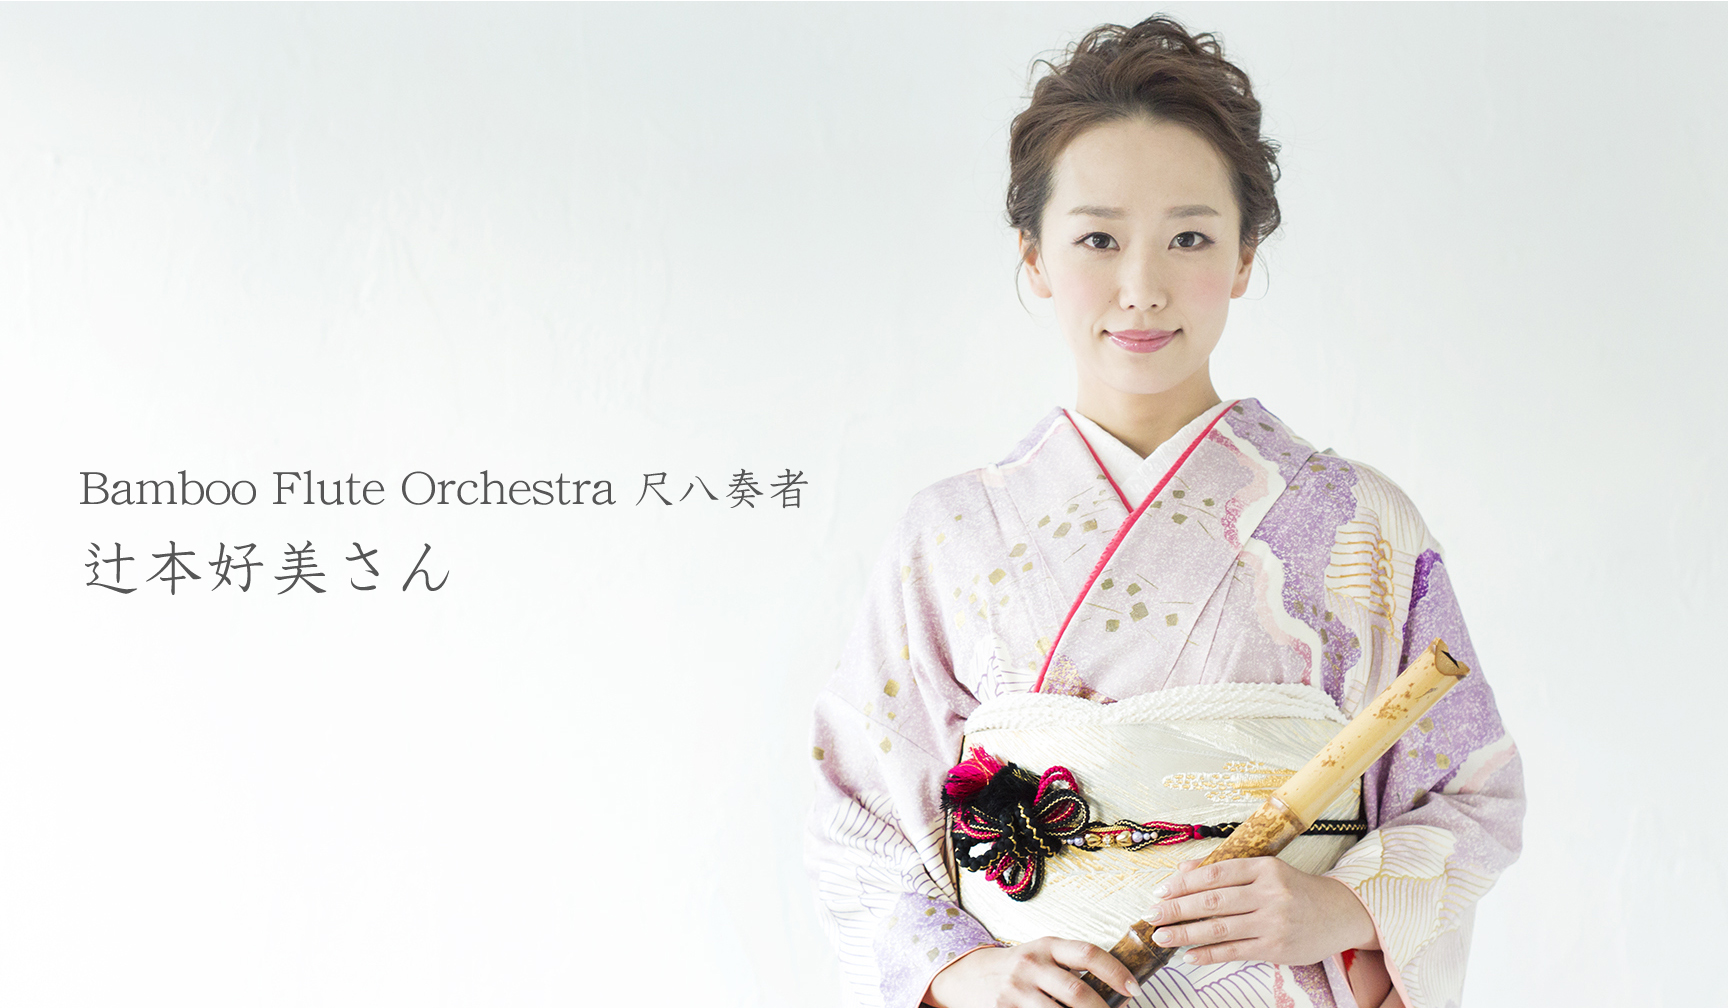 Bamboo Flute Orchestra 尺八奏者・辻本好美さん